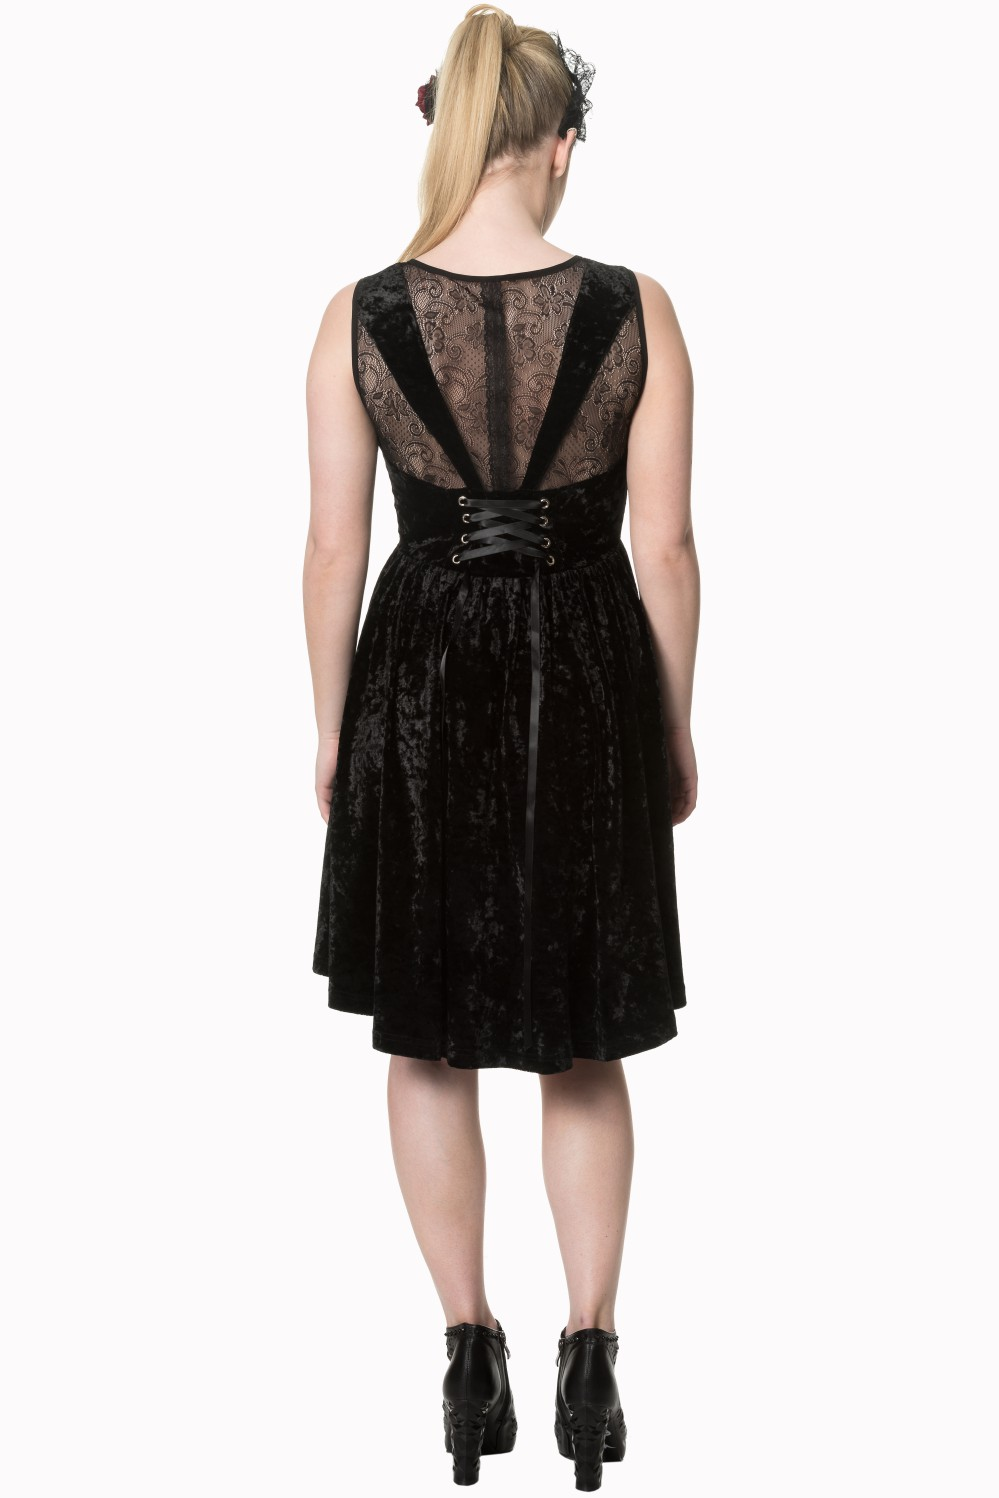 Banned Shadow Angel Velvet Black Dress